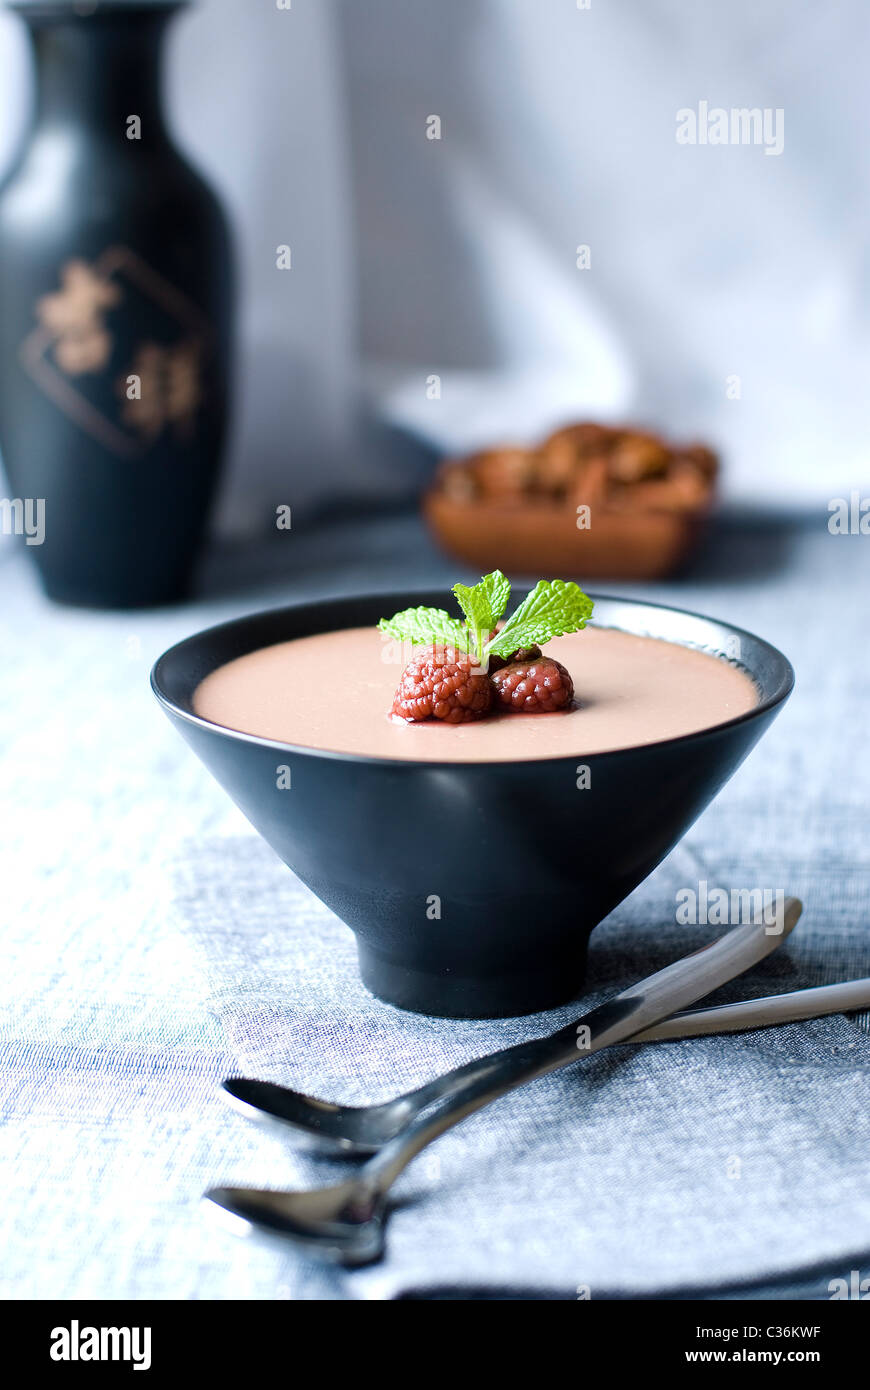 Chocolate mousse - Stock Image